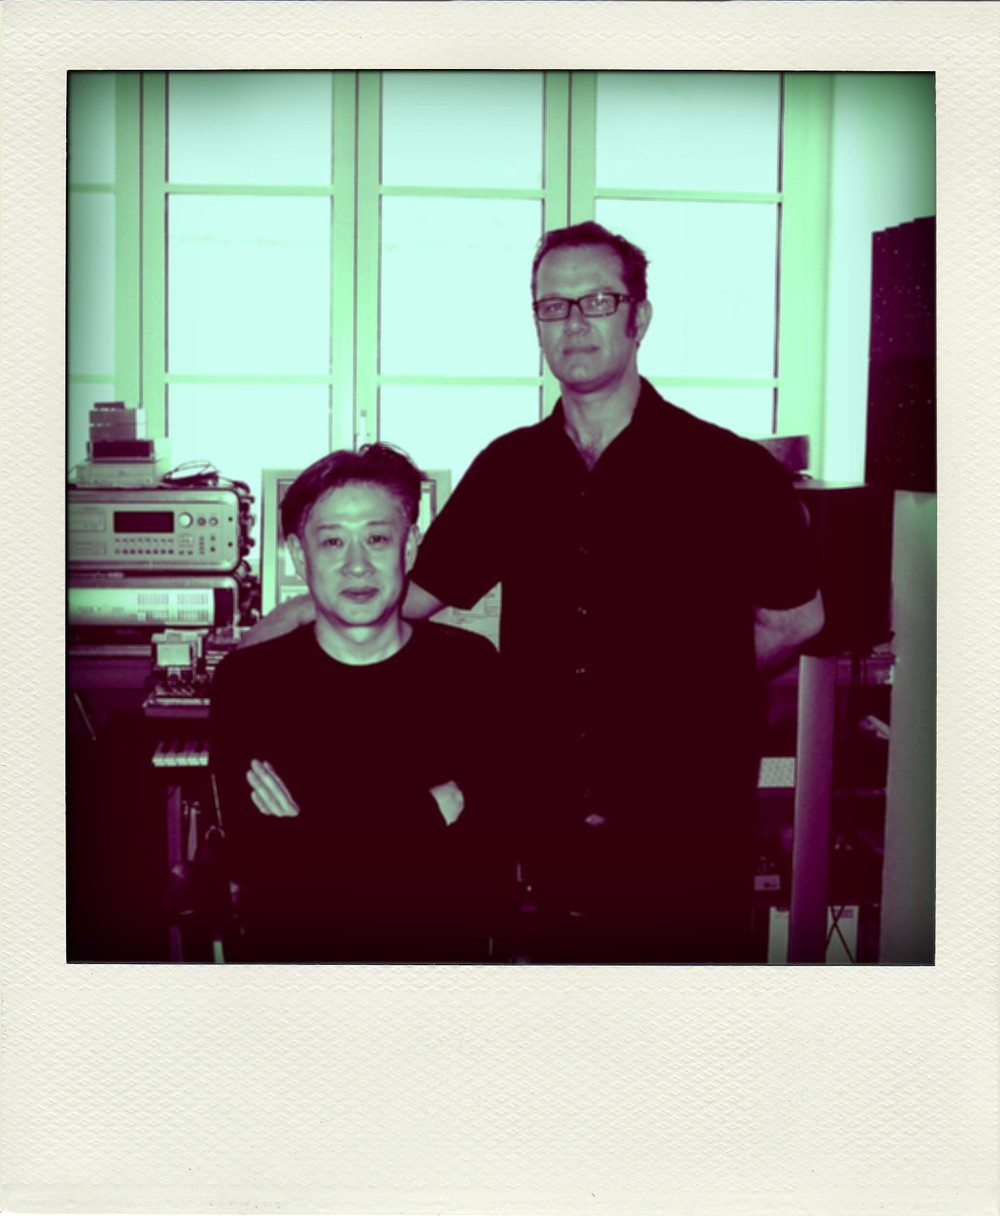 With Jun Miyake, Paris 2007